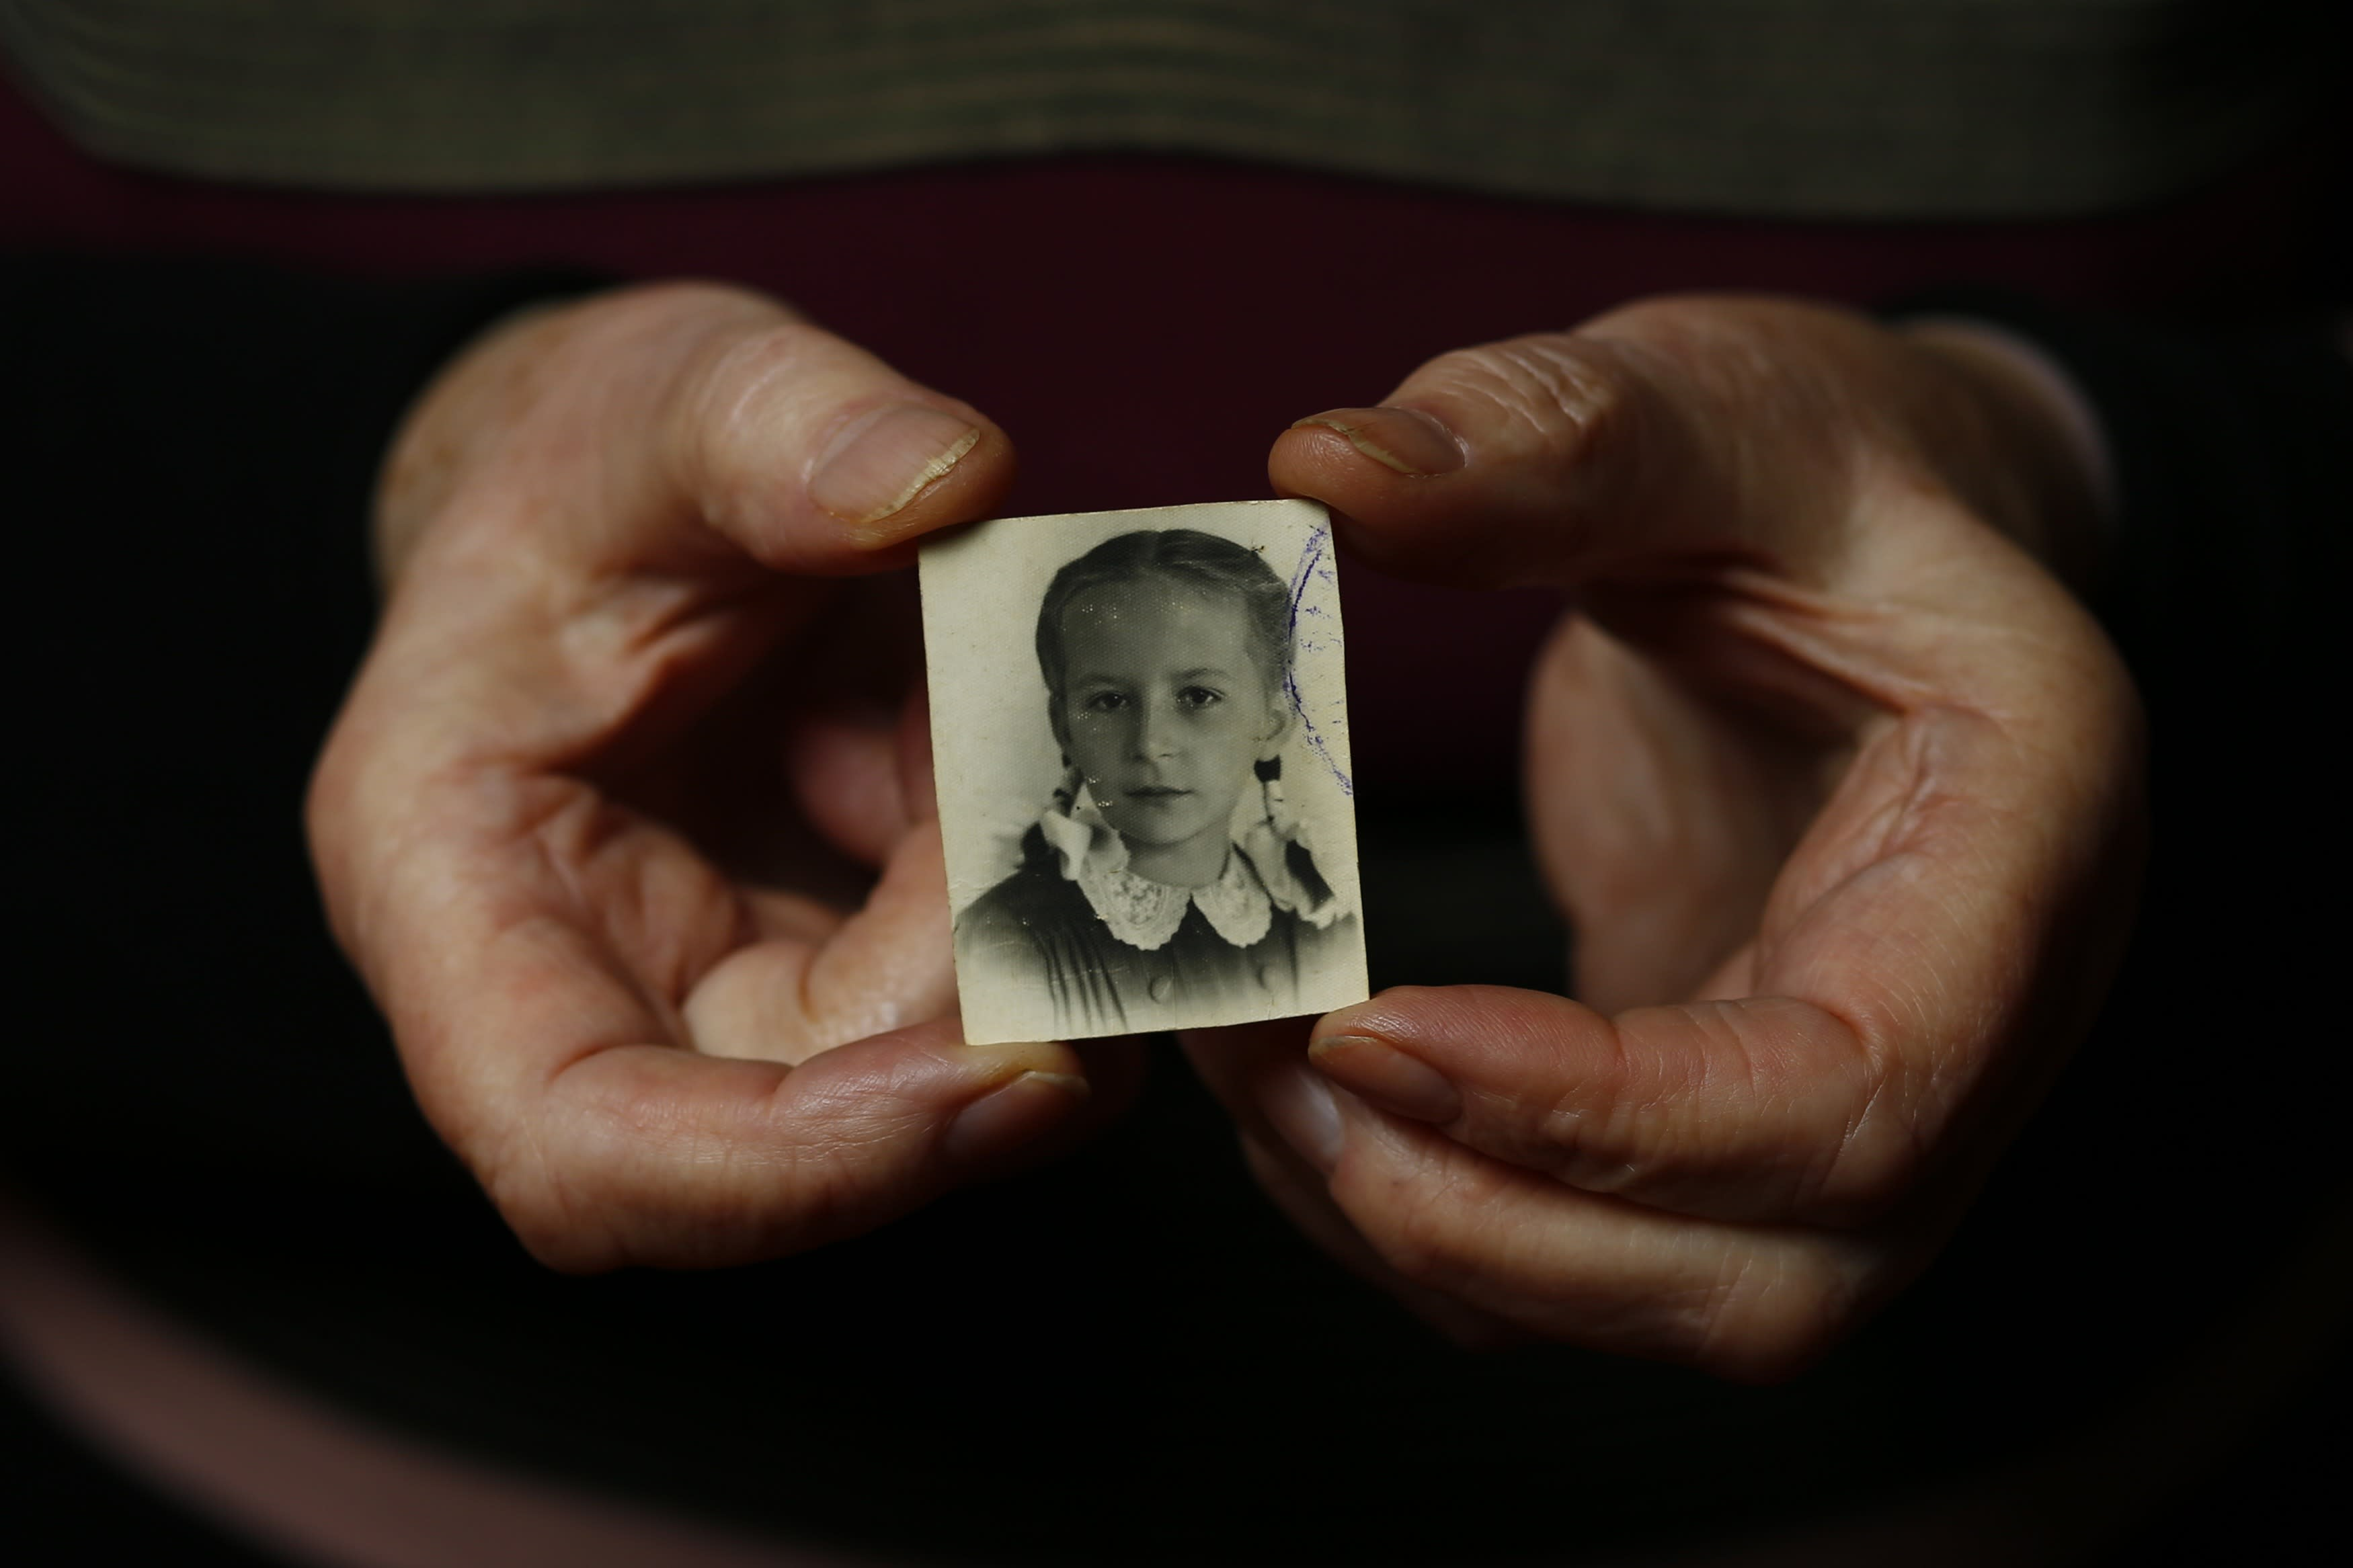 Surviving faces of the Holocaust